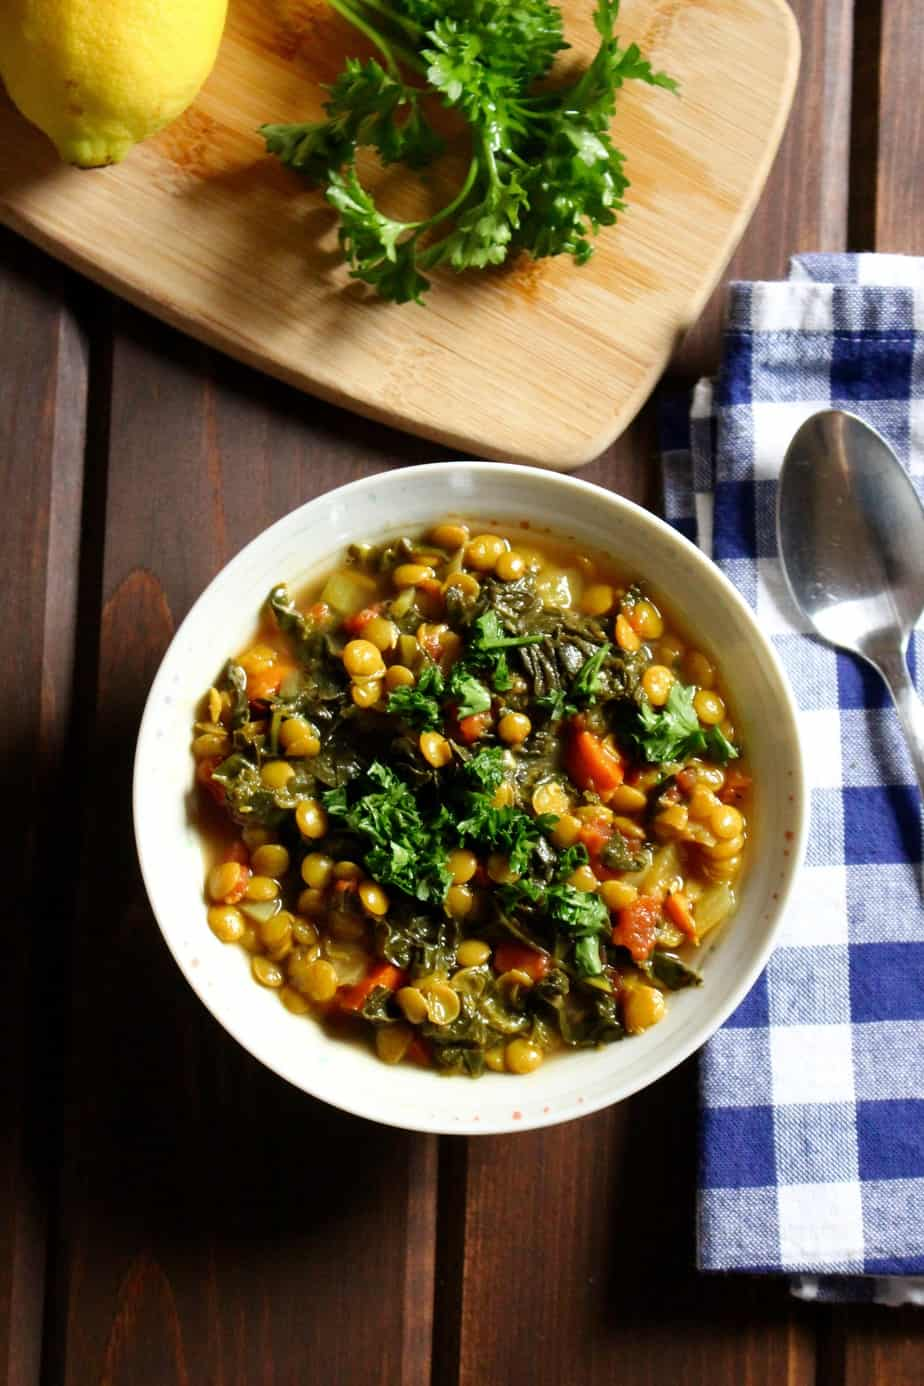 Lemony Lentil Stew With Kale